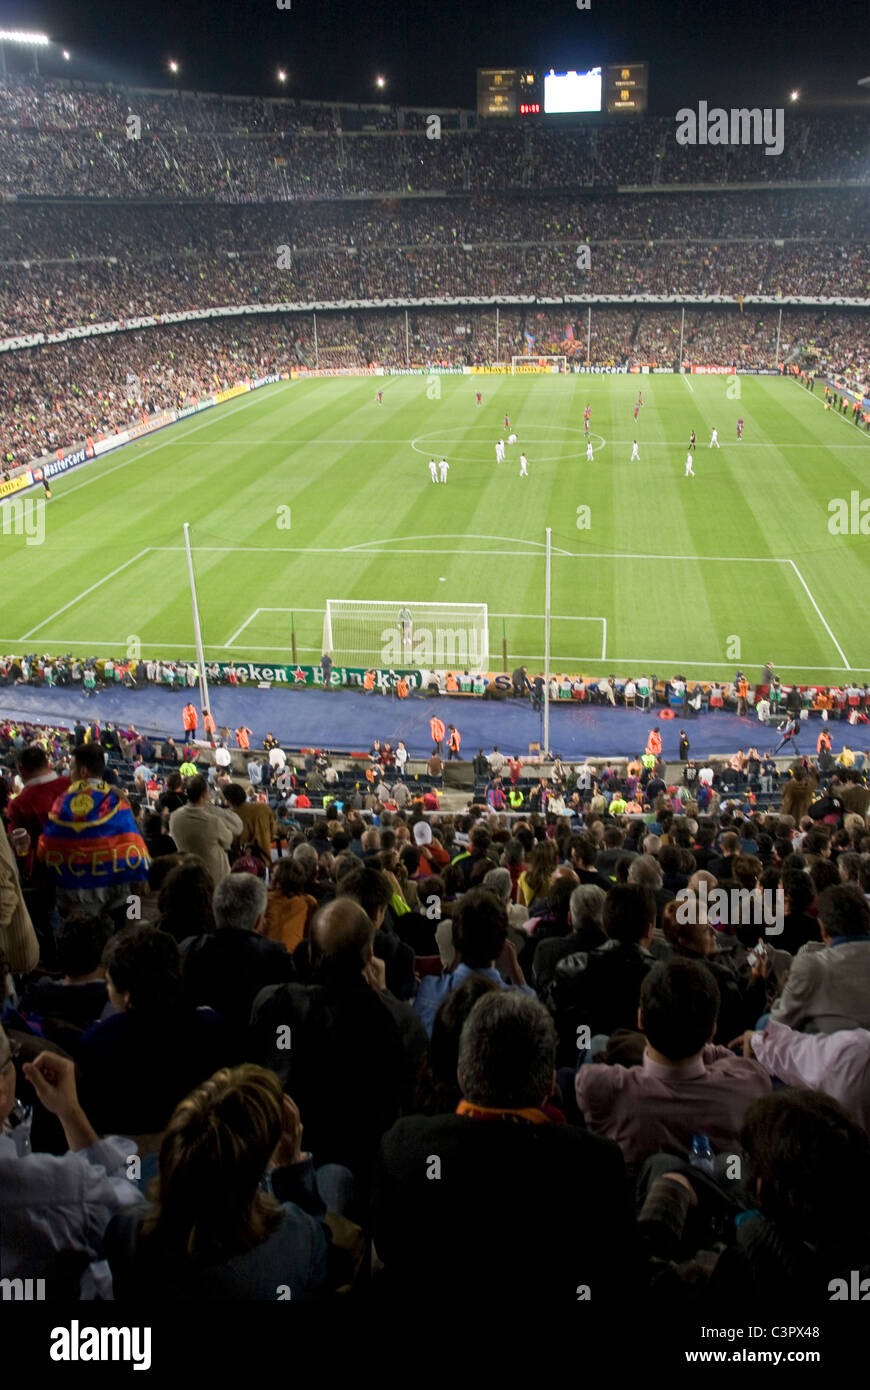 Camp Nou football stadium, home ground to Barcelona Football Club, during a Champions League game. (Spain) - Stock Image